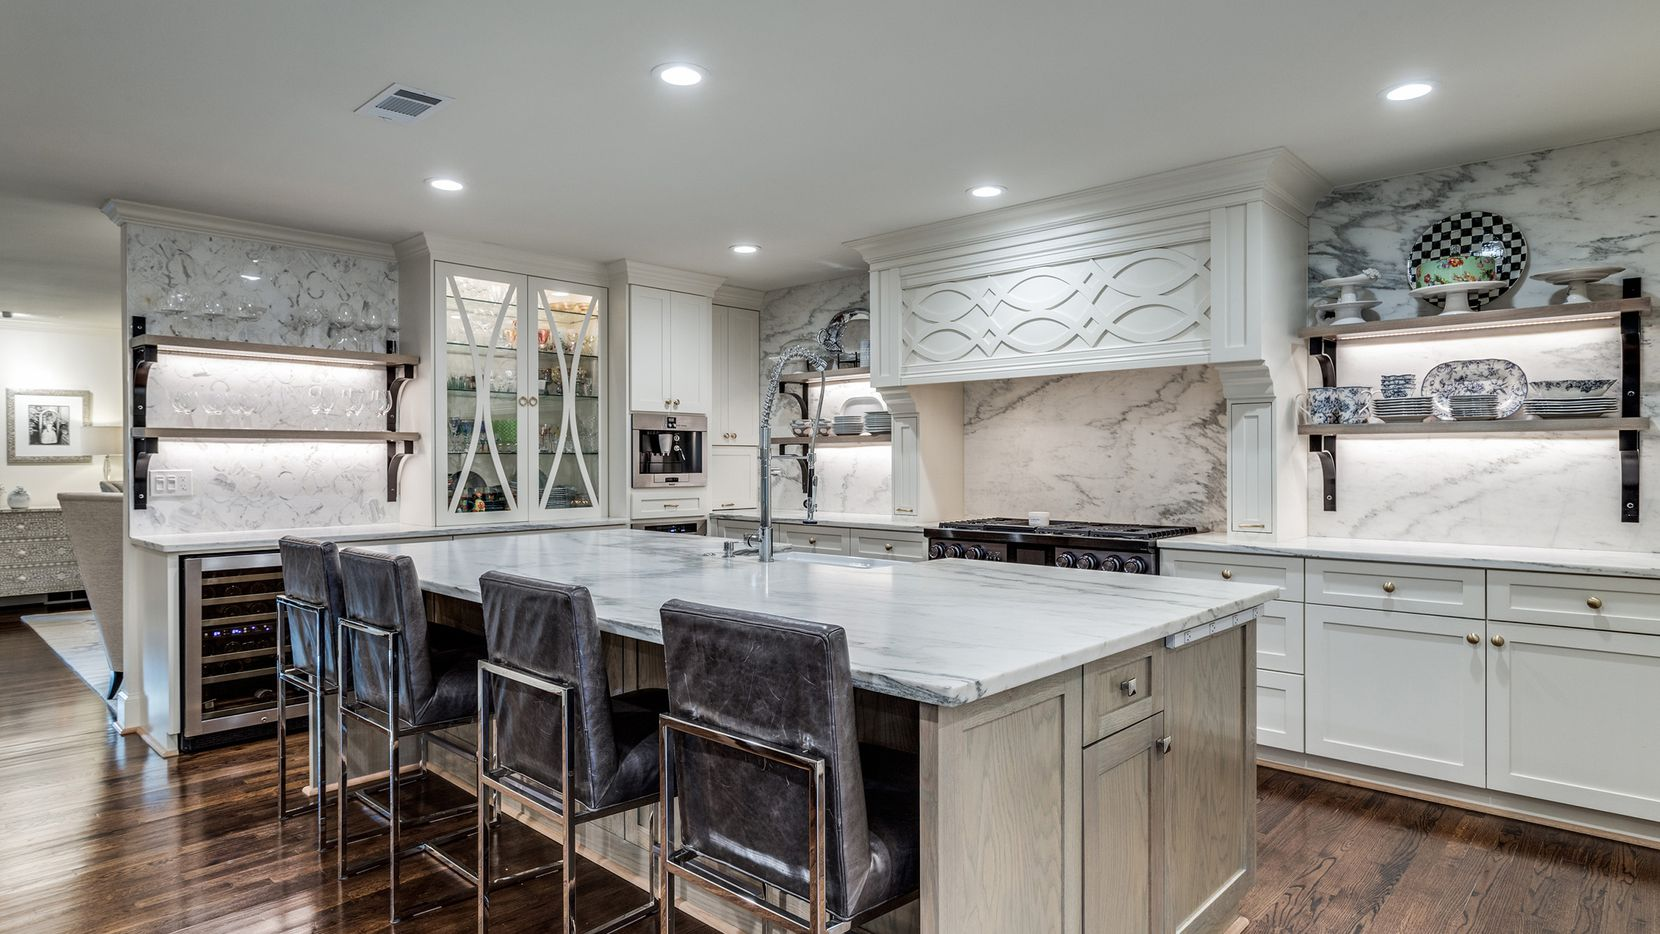 The transitional farmhouse home at 8302 Midway Road in Bluffview Estates features a kitchen with a white marble island and a pantry. It opens to the family room.